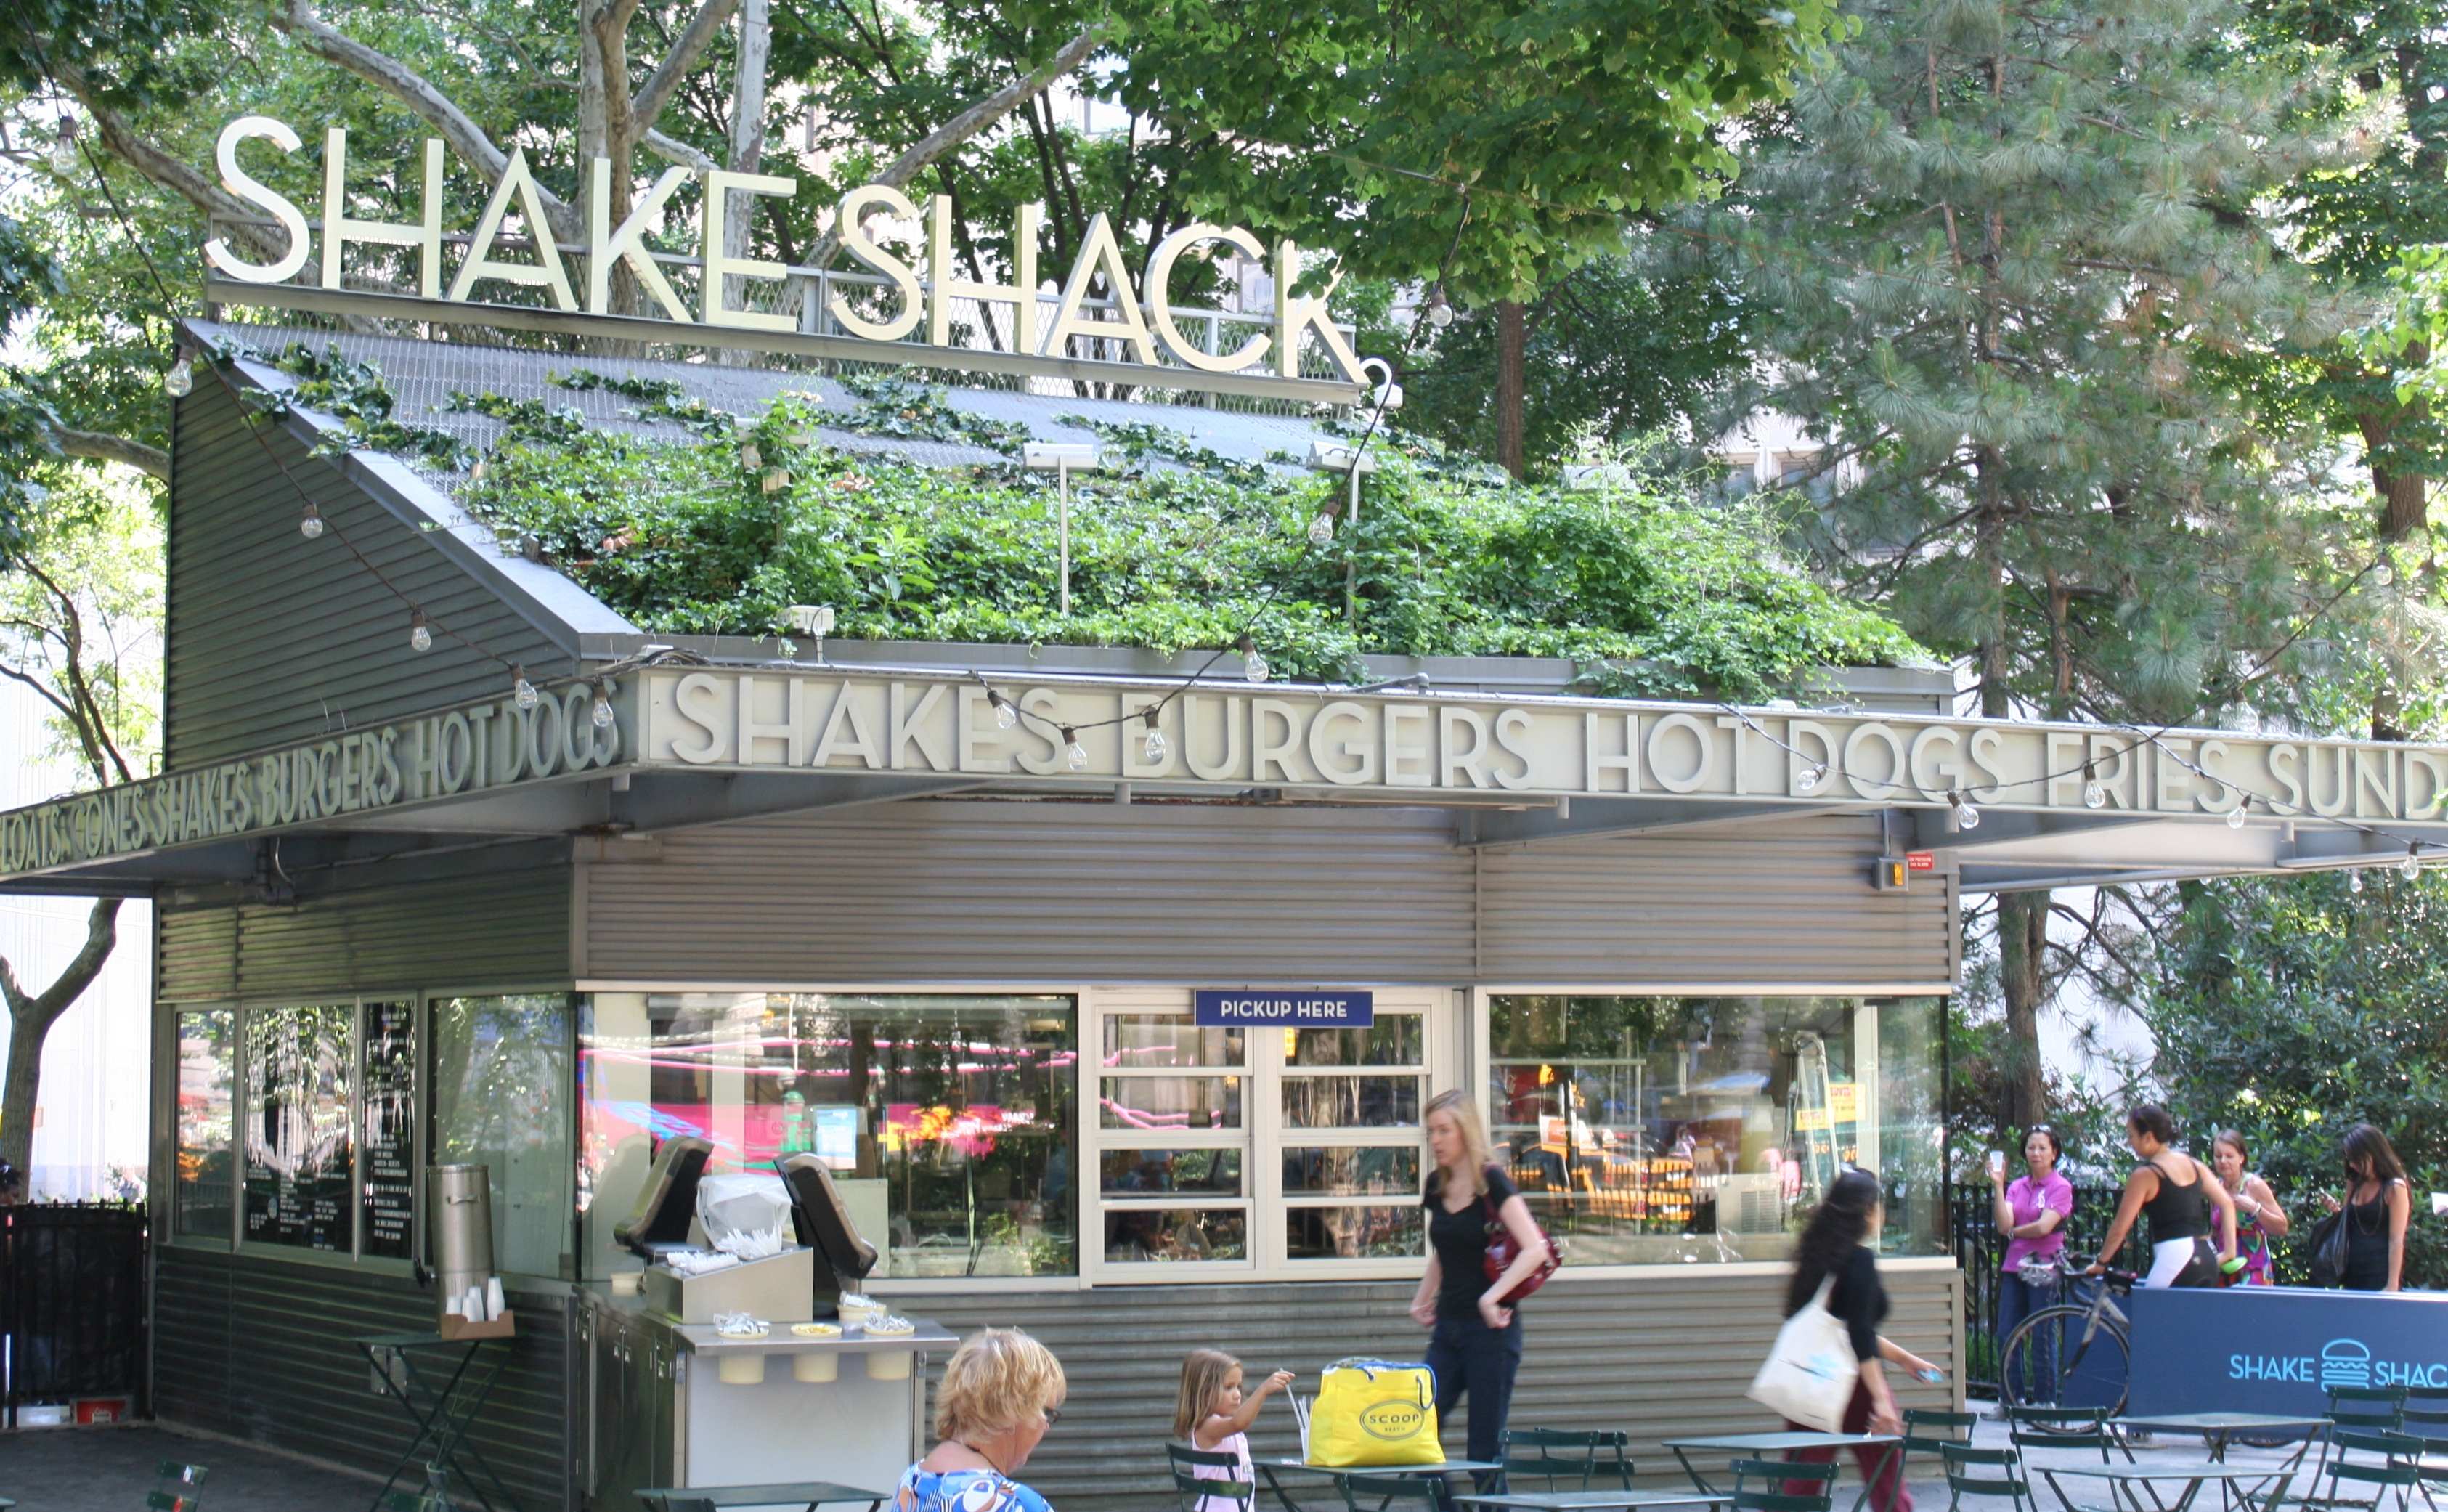 https://upload.wikimedia.org/wikipedia/commons/c/c2/Shake_Shack_Madison_Square.jpg